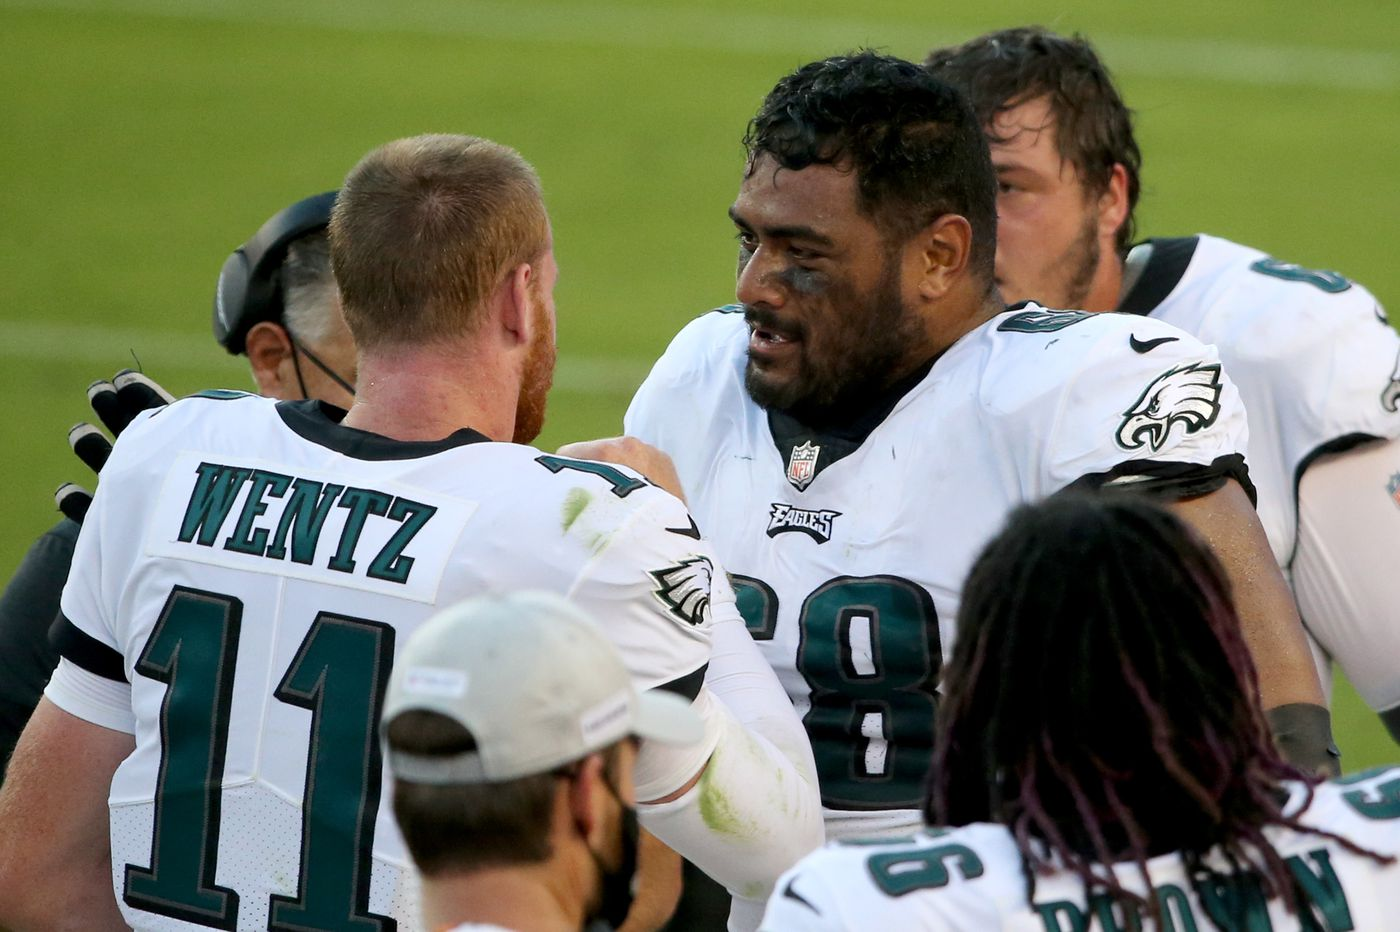 Eagles tackle Jordan Mailata passed his first test but will face a tougher one Sunday against the Steelers and Bud Dupree